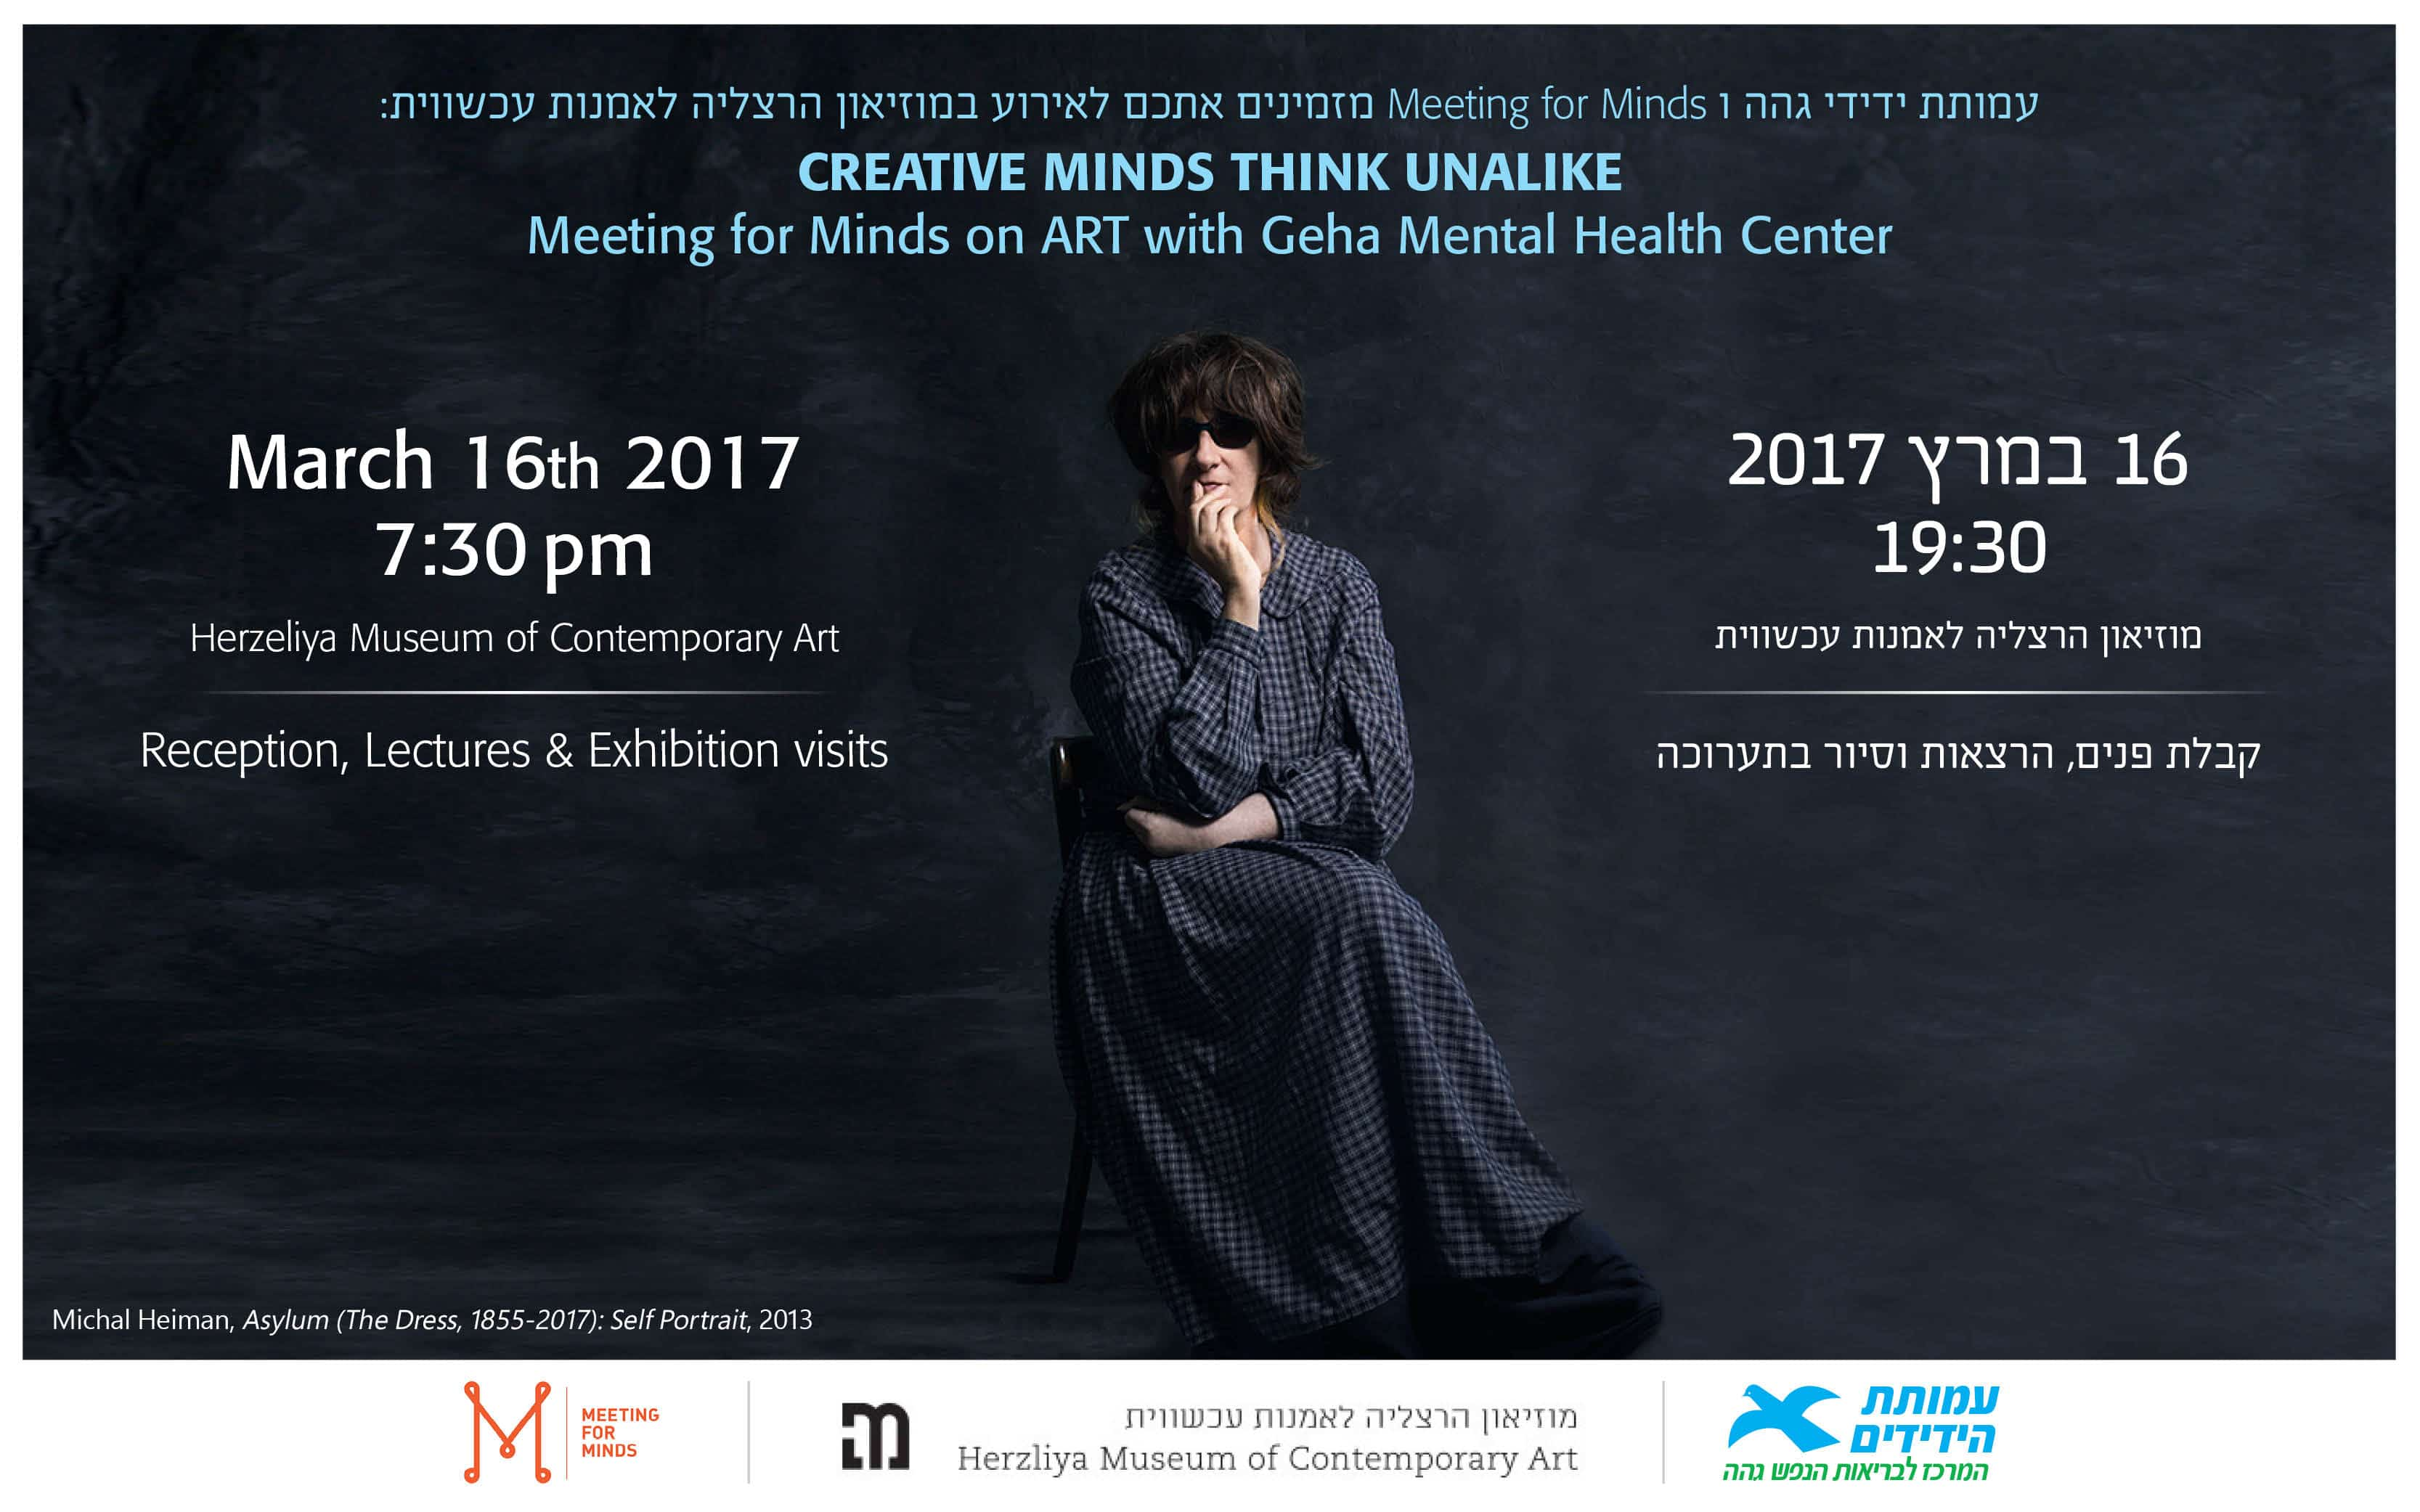 Meeting for Minds on Art with Geha Mental Health Center – Israel 2017